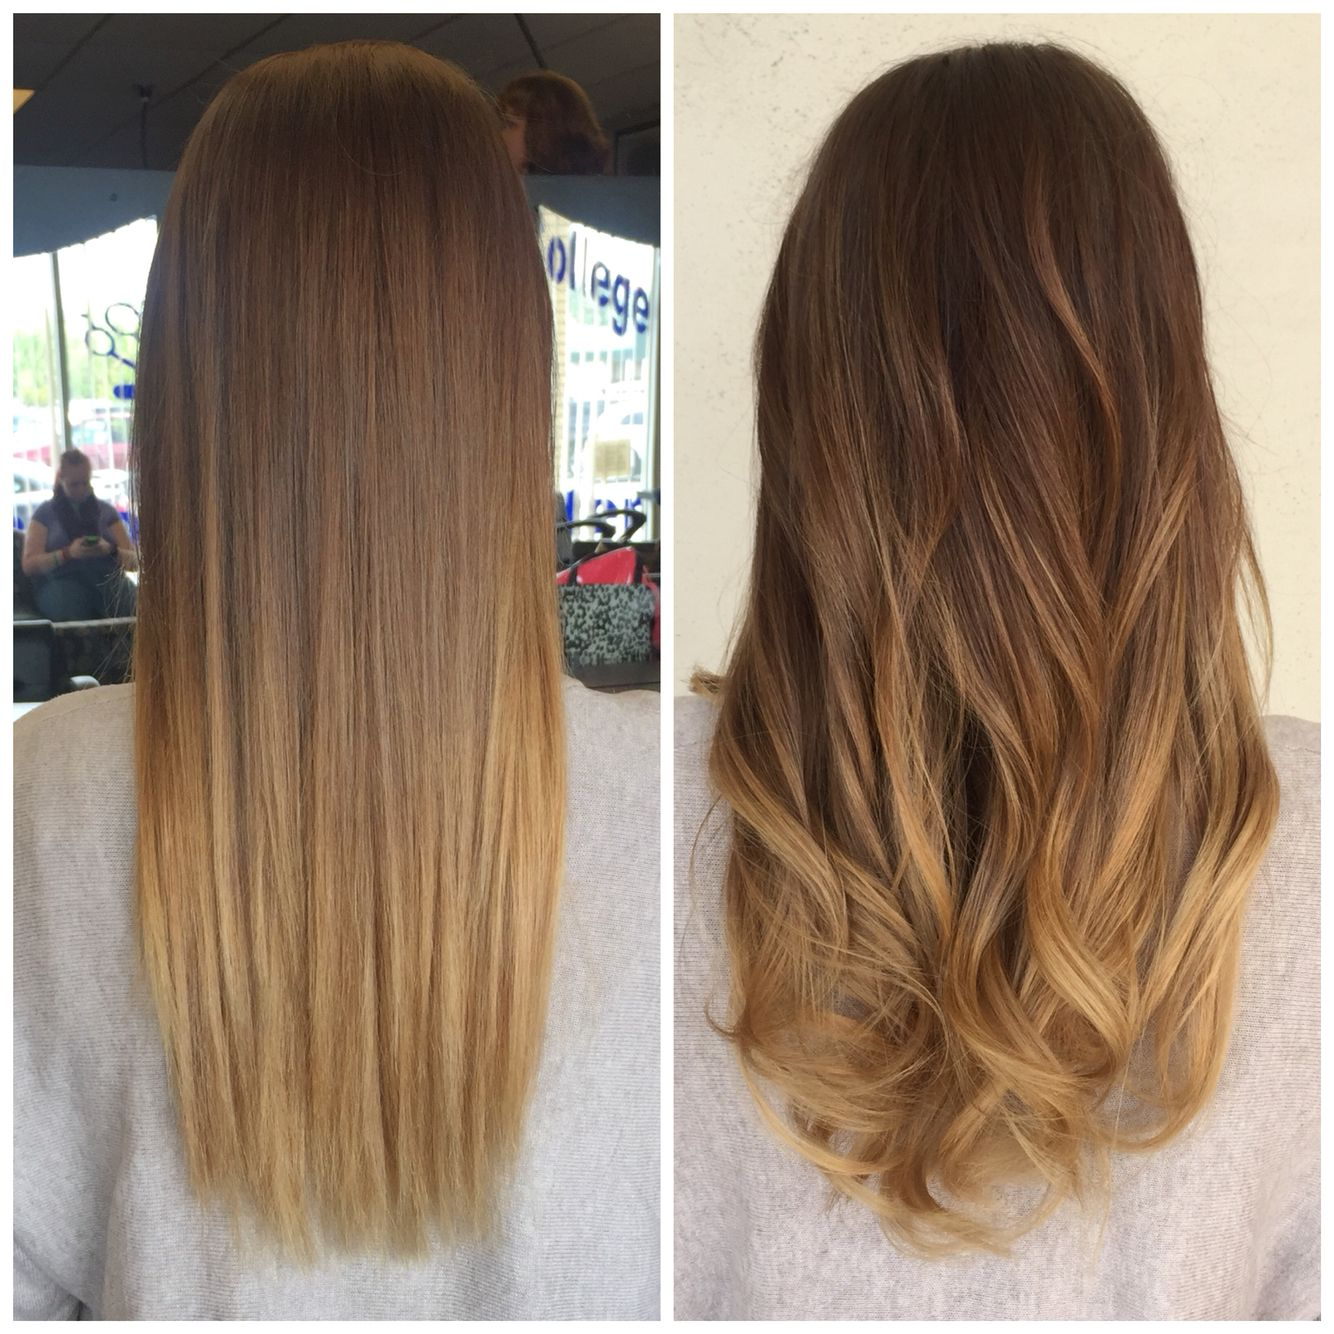 Straightwavy Blonde Balayage Ombre Hairstyles